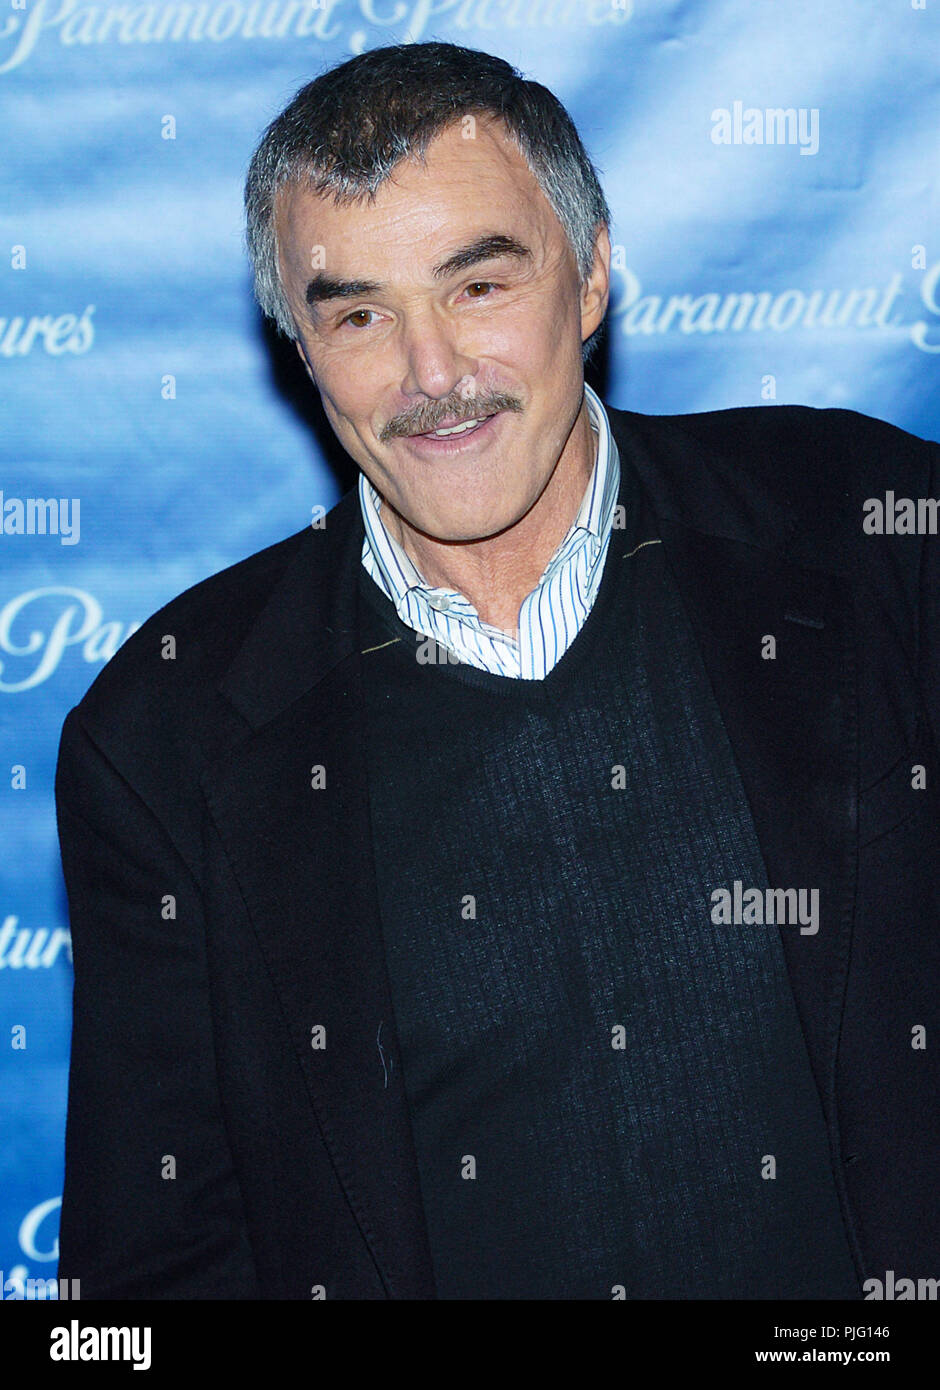 Burt Reynold arriving at the Paramount Pictures Star-Studded Showest Dinner at the Paris Hotel in Las Vegas. March 24, 2004.ReynoldBurt003 Event in Hollywood Life - California, Red Carpet Event, USA, Film Industry, Celebrities, Photography, Bestof, Arts Culture and Entertainment, Topix Celebrities fashion, Best of, Hollywood Life, Event in Hollywood Life - California,  movie celebrities, Topix, Bestof, Arts Culture and Entertainment, vertical, - Stock Image